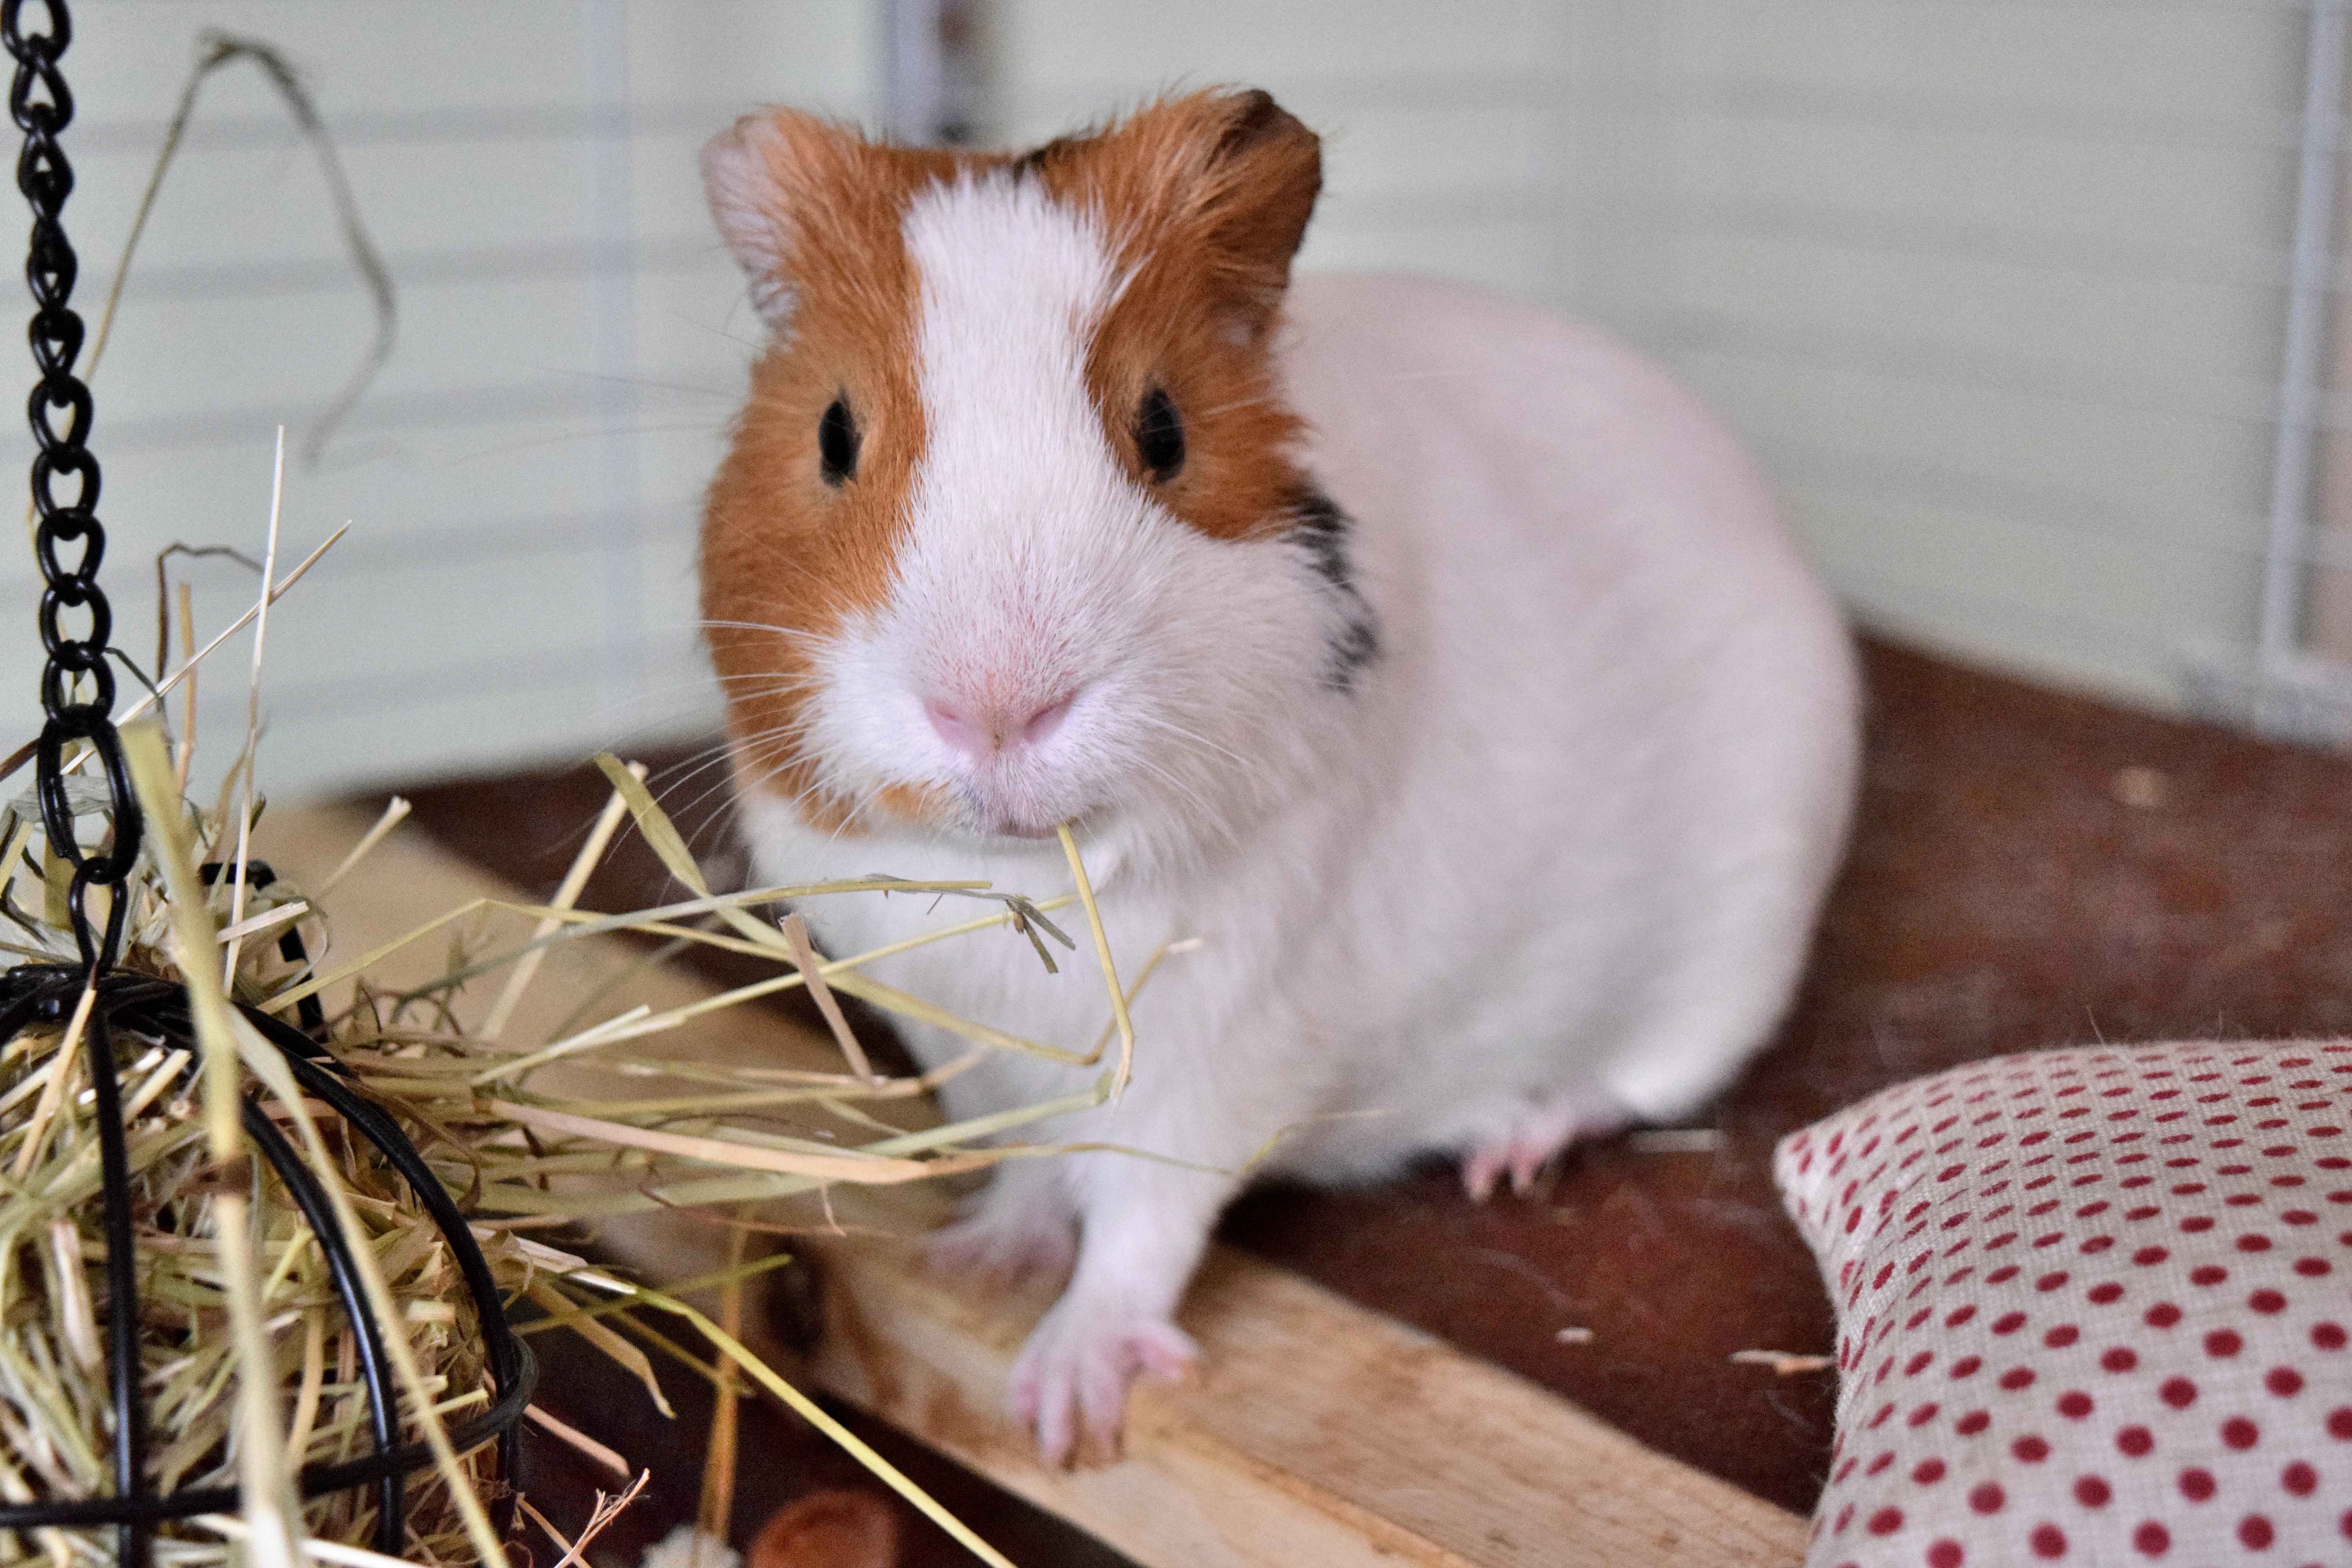 91530 download wallpaper Animals, Guinea Pig, Rodent, Cell, Cage screensavers and pictures for free